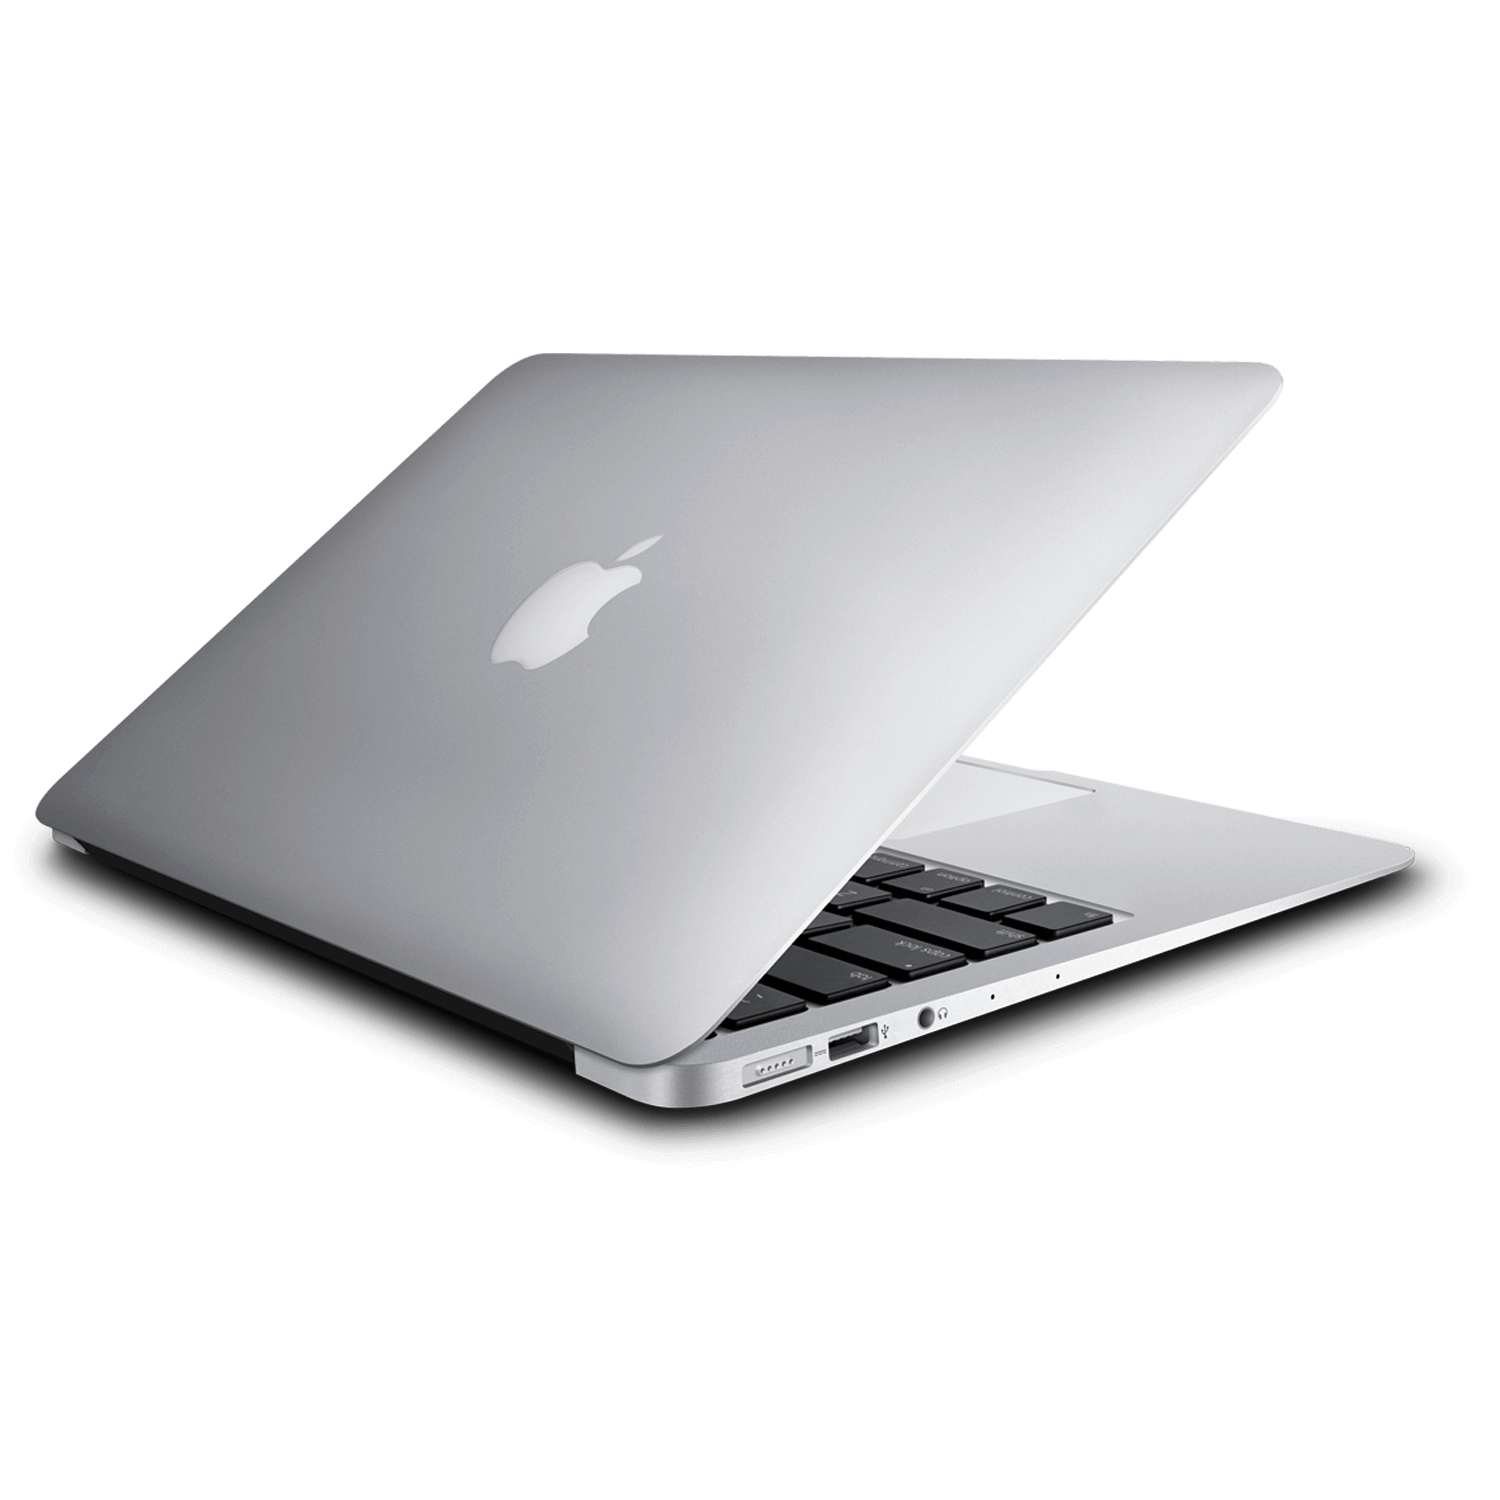 Apple Brand Macbook Photo image #47635